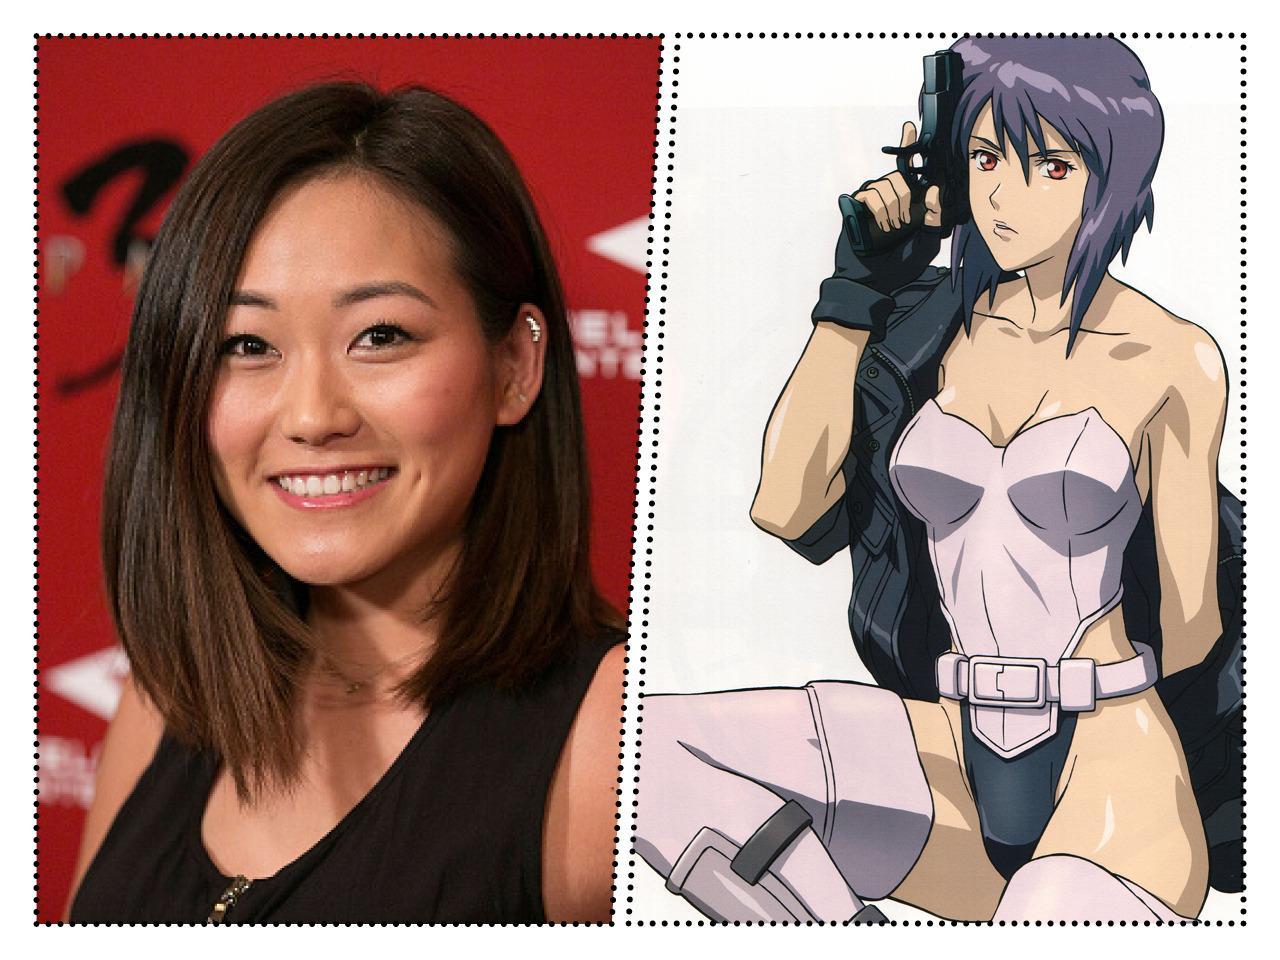 "<p>You may not recognize her, but the 23 year-old Japanese-American <a href=""http://www.imdb.com/name/nm7250922/"">actress </a>(and UCLA grad) will be appearing as Katana in the summer's upcoming David Ayer film <i>Suicide Squad</i> alongside Scott Eastwood, Will Smith, Jared Leto, and Ben Affleck.</p>"